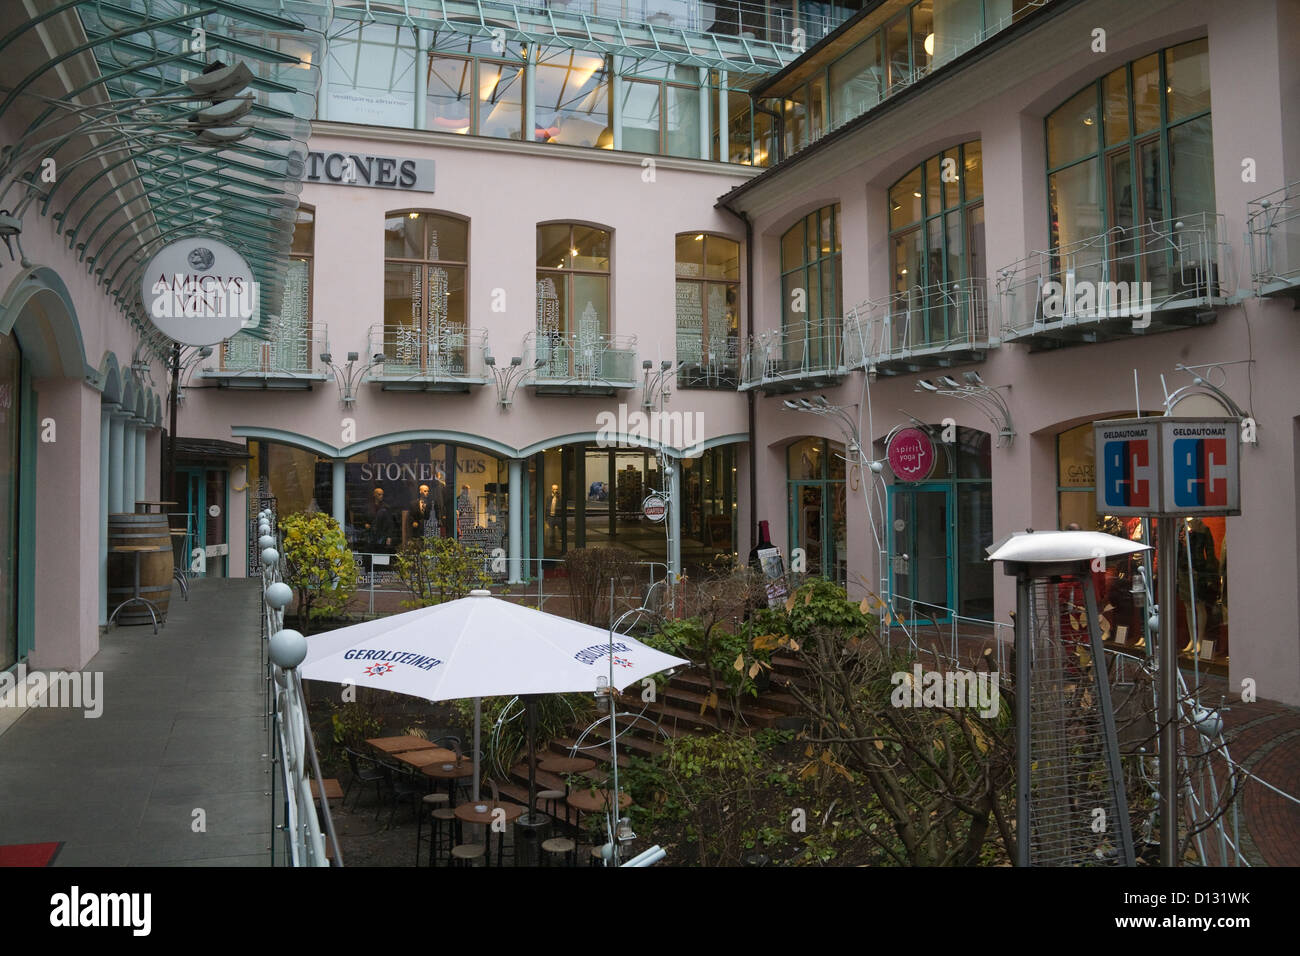 Hackesche Hofe Berlin Germany EU Smartened up and commercialised historic courtyards contain art galleries workshops - Stock Image